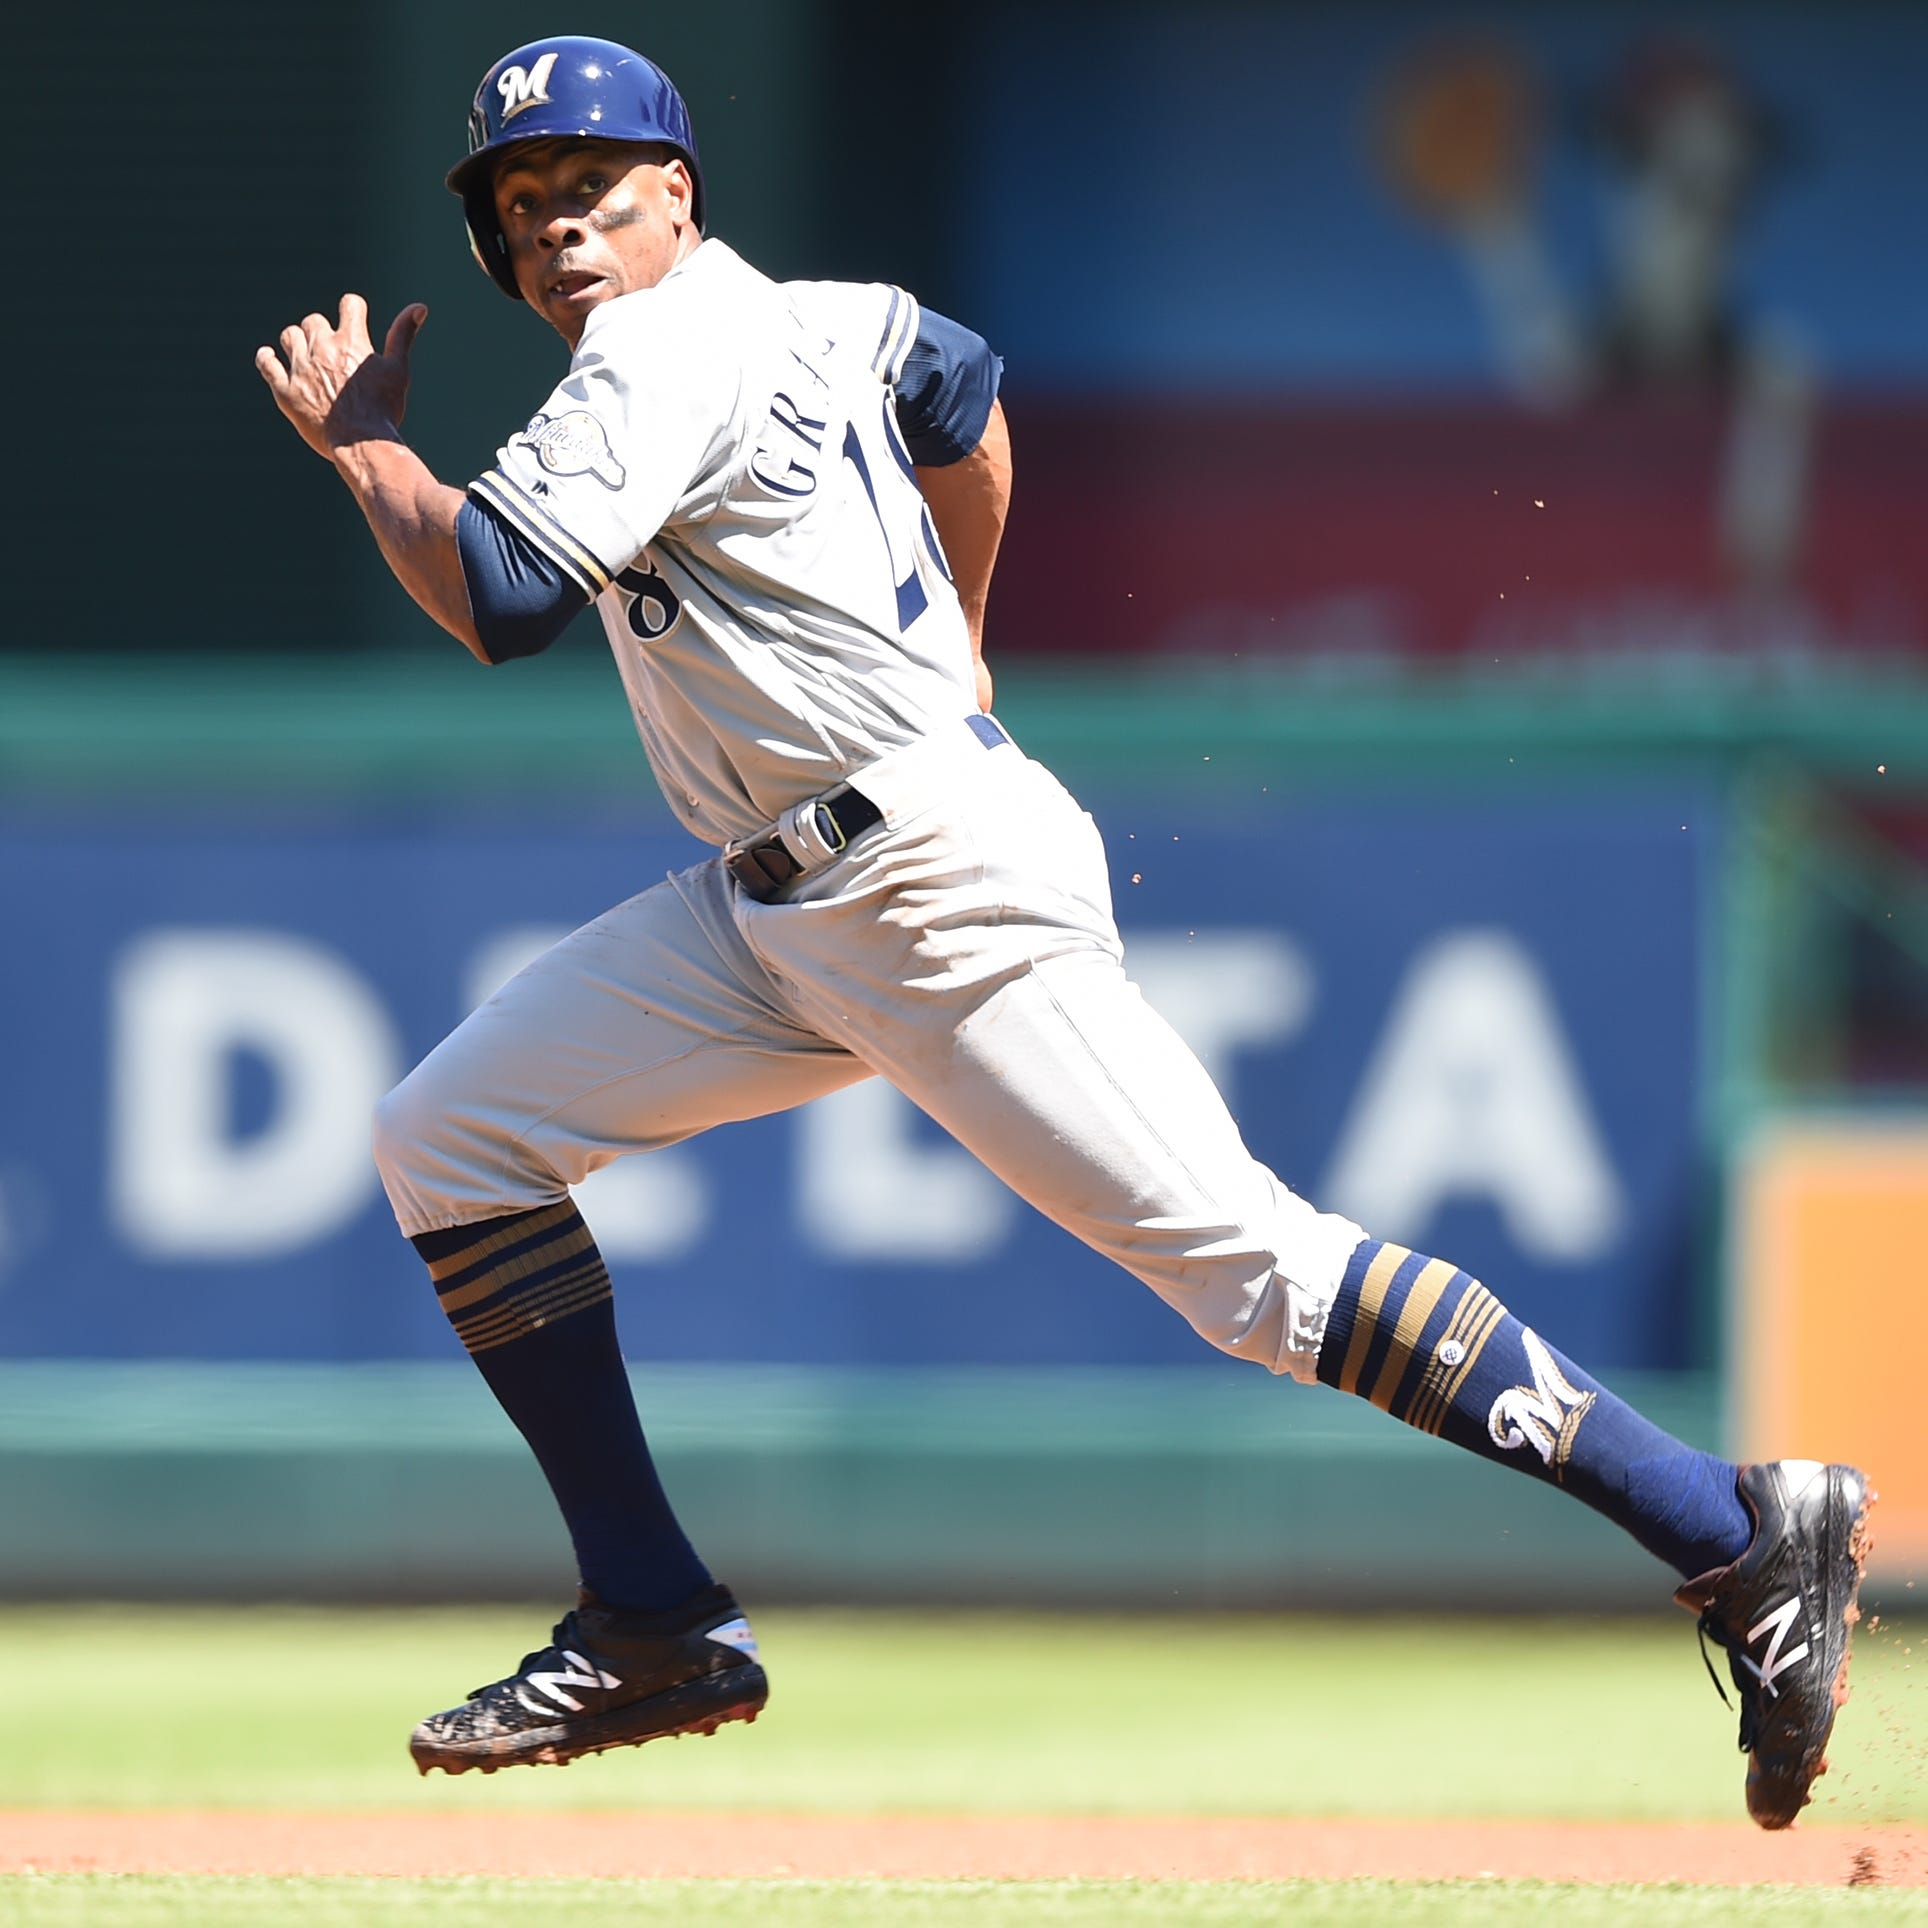 Get To Know Q&A: There's a lot more to Brewers' Curtis Granderson than meets the eye